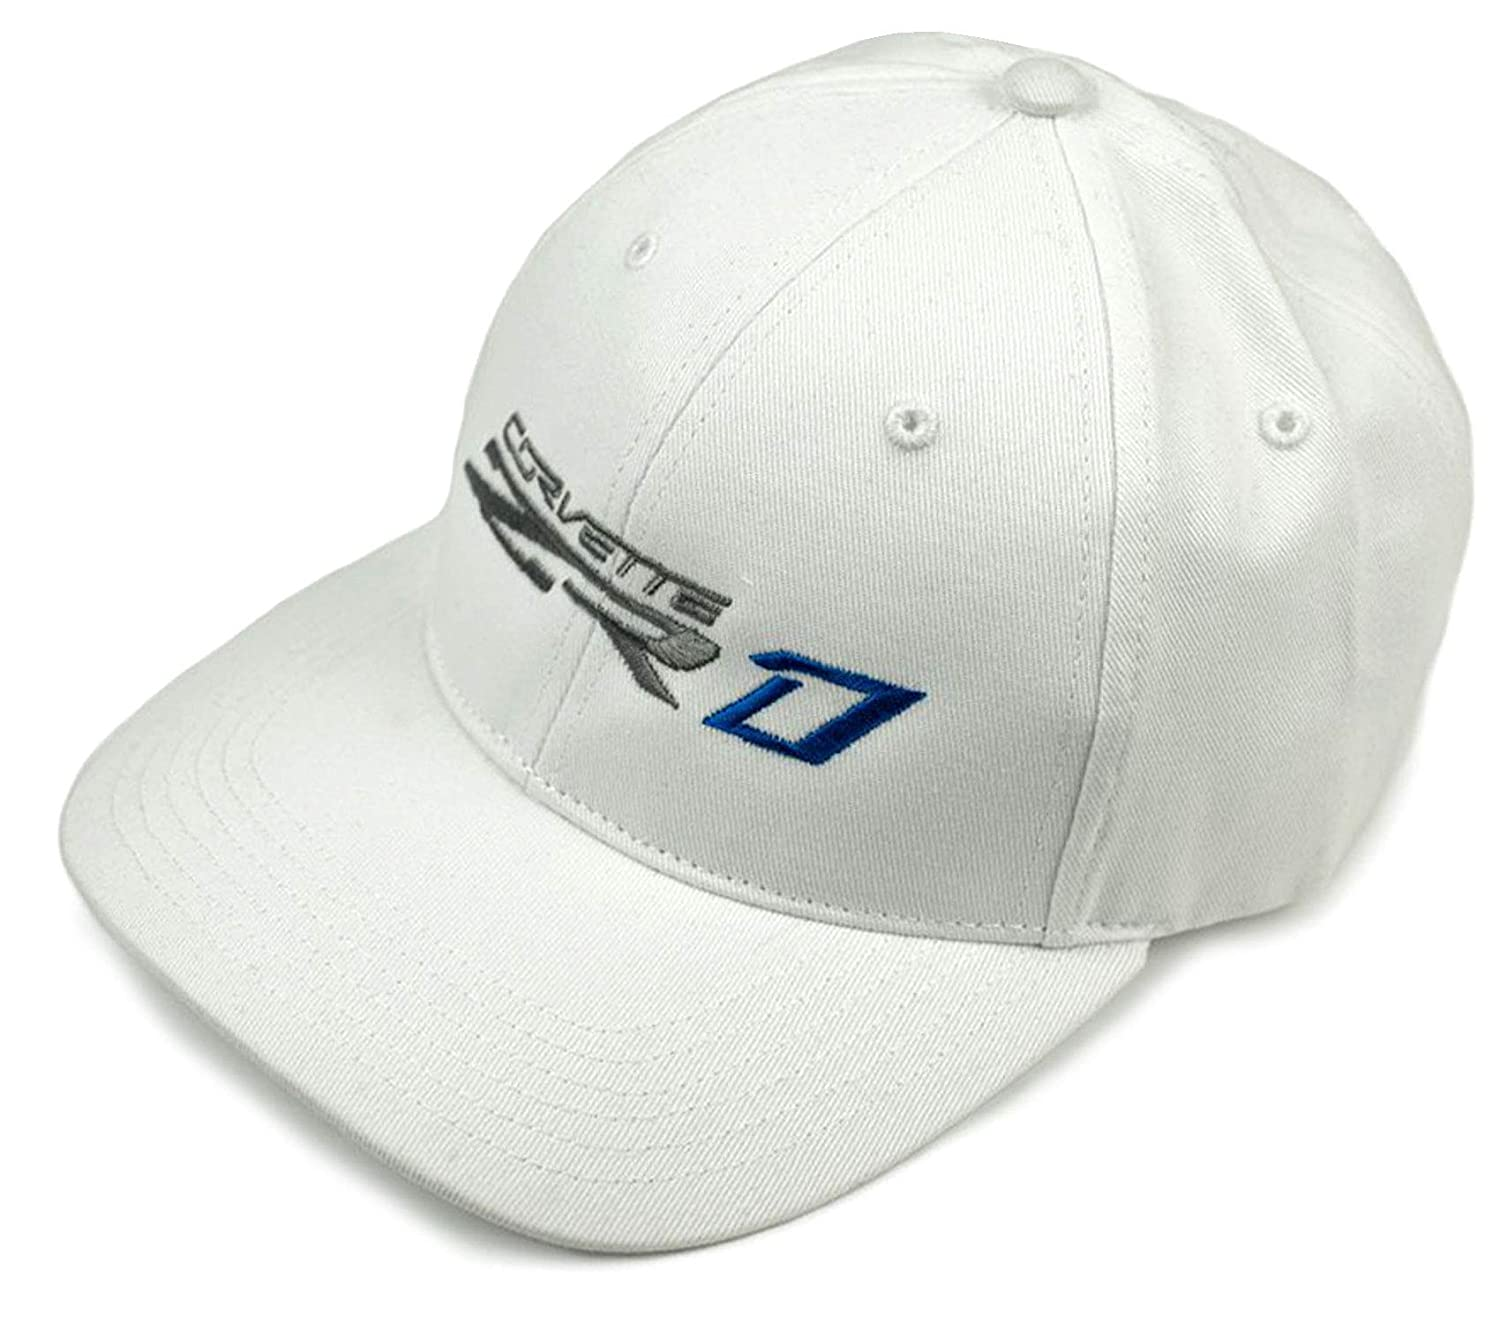 Gregs Automotive ZR1 Corvette Chevrolet Chevy White Hat Cap Bundle with Driving Style Decal